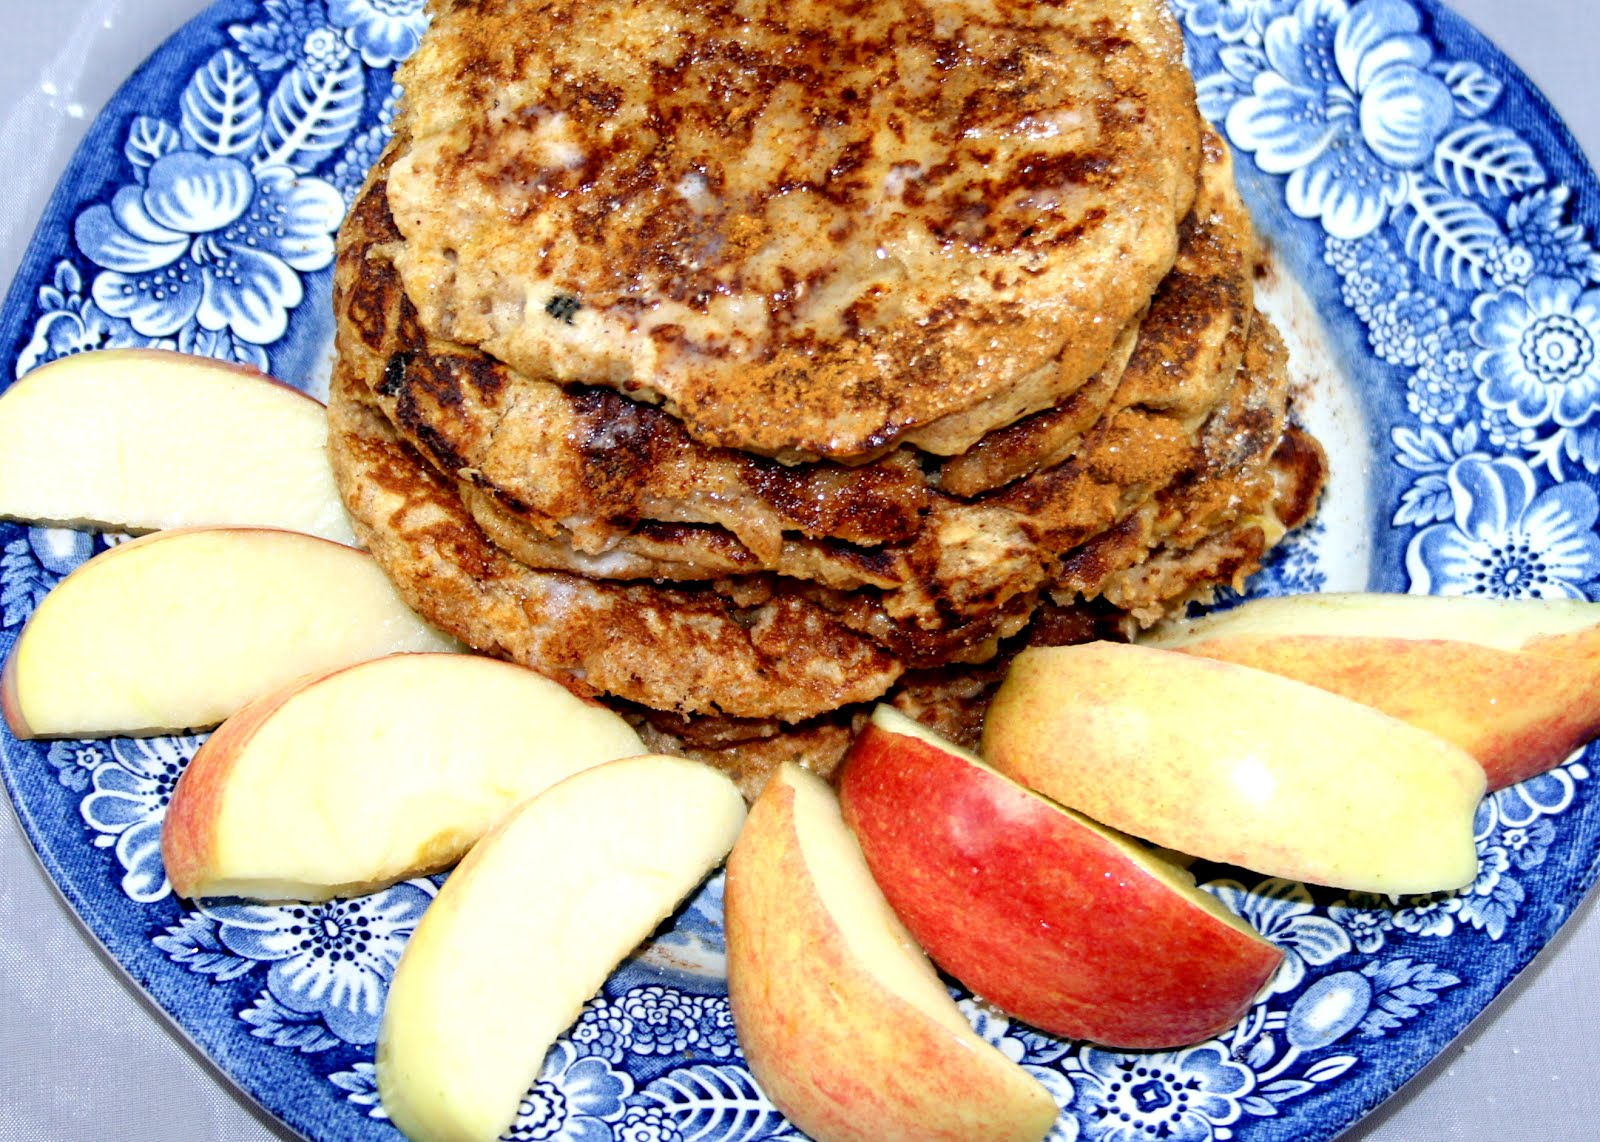 Grain Crazy: Apple Oatmeal Whole Grain Pancakes